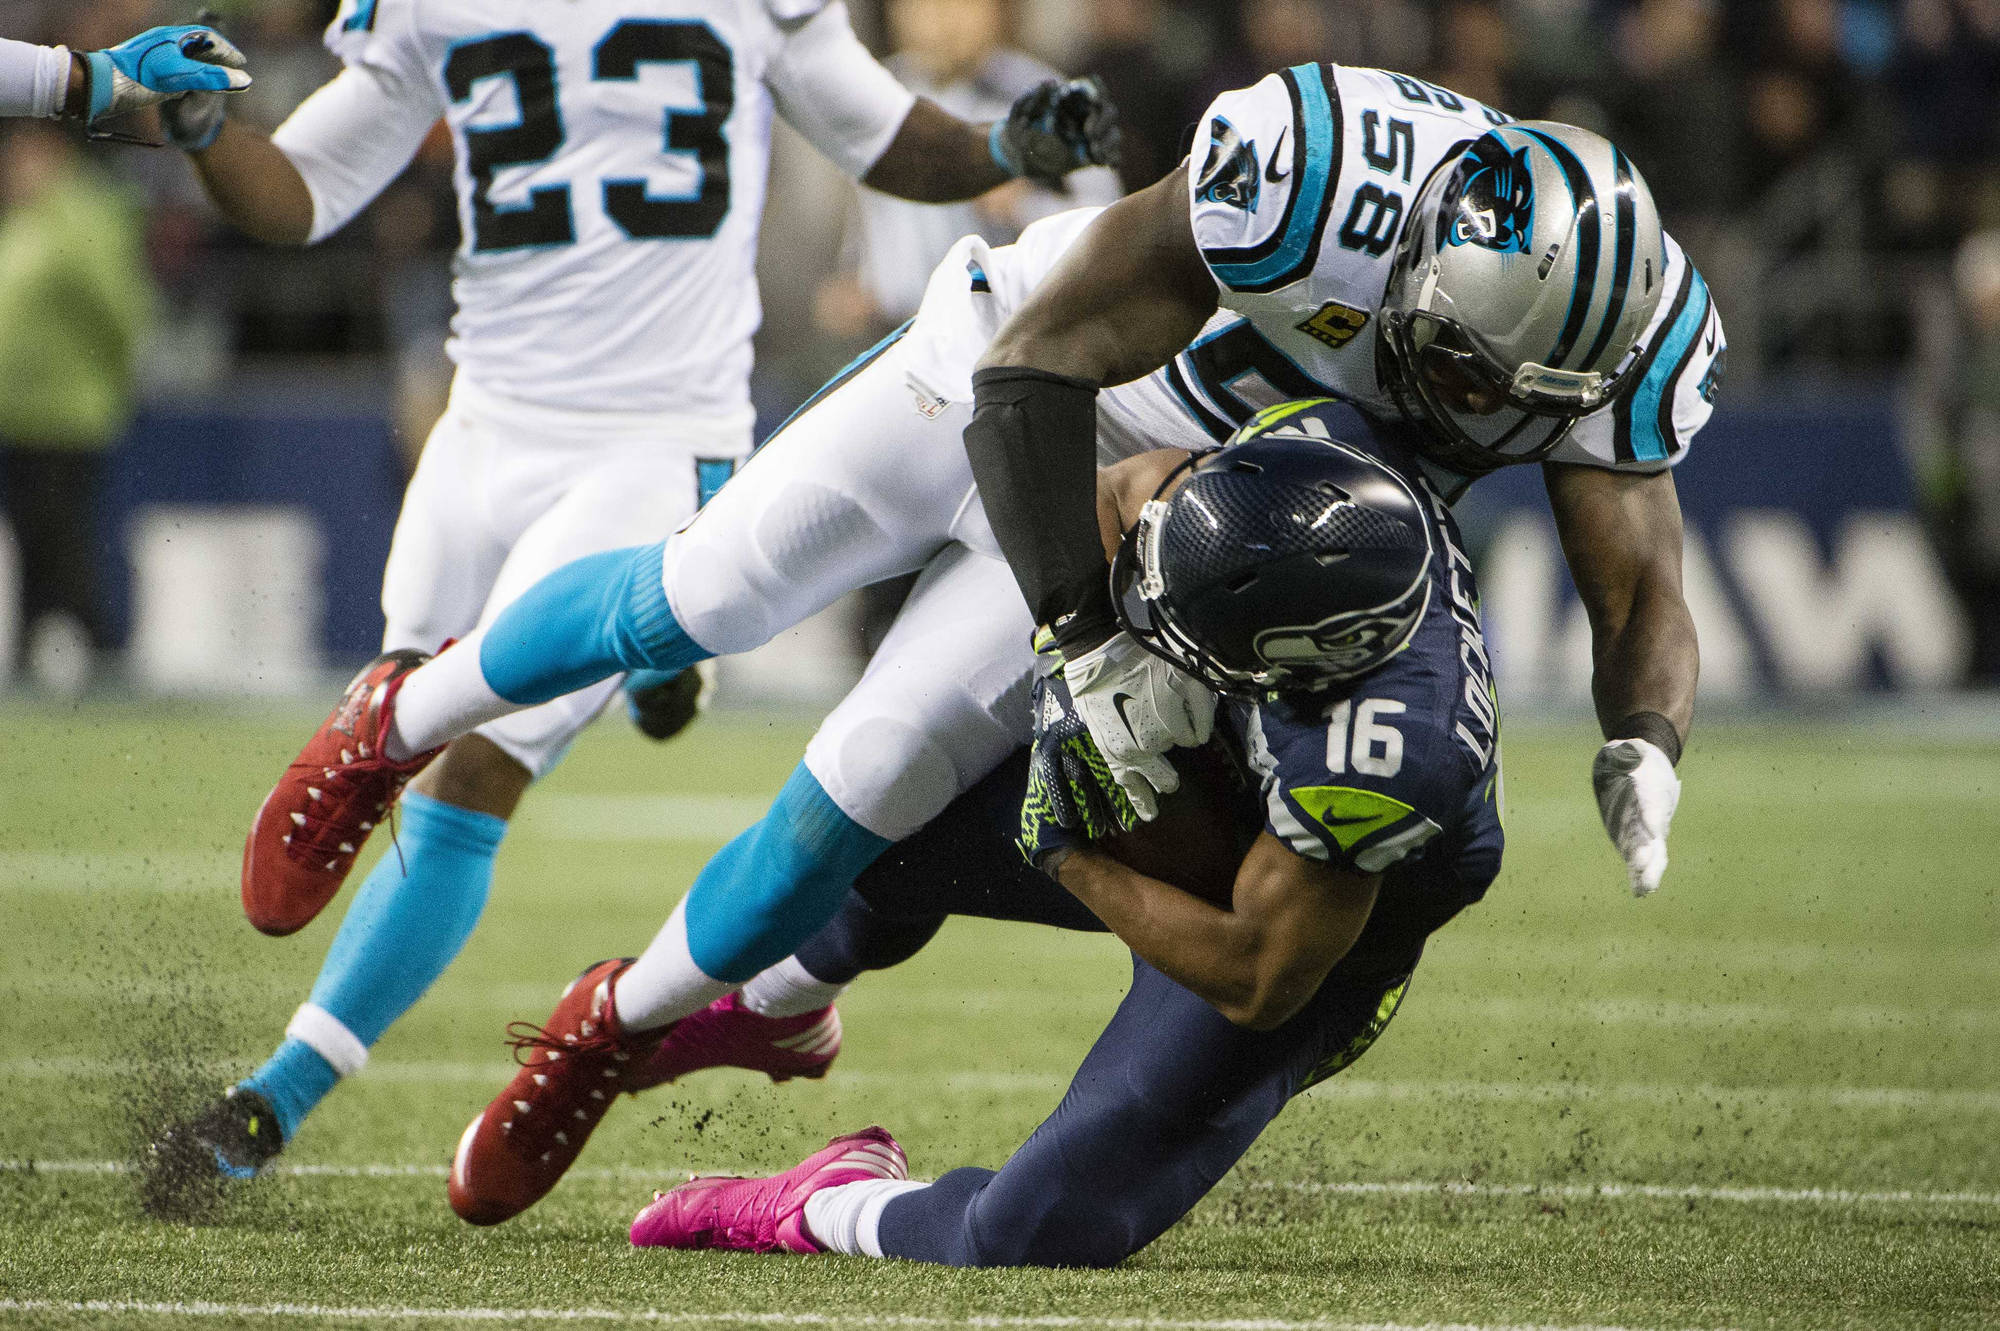 Time is Really Running Out for the Panthers Veteran Leaders to Get a Ring